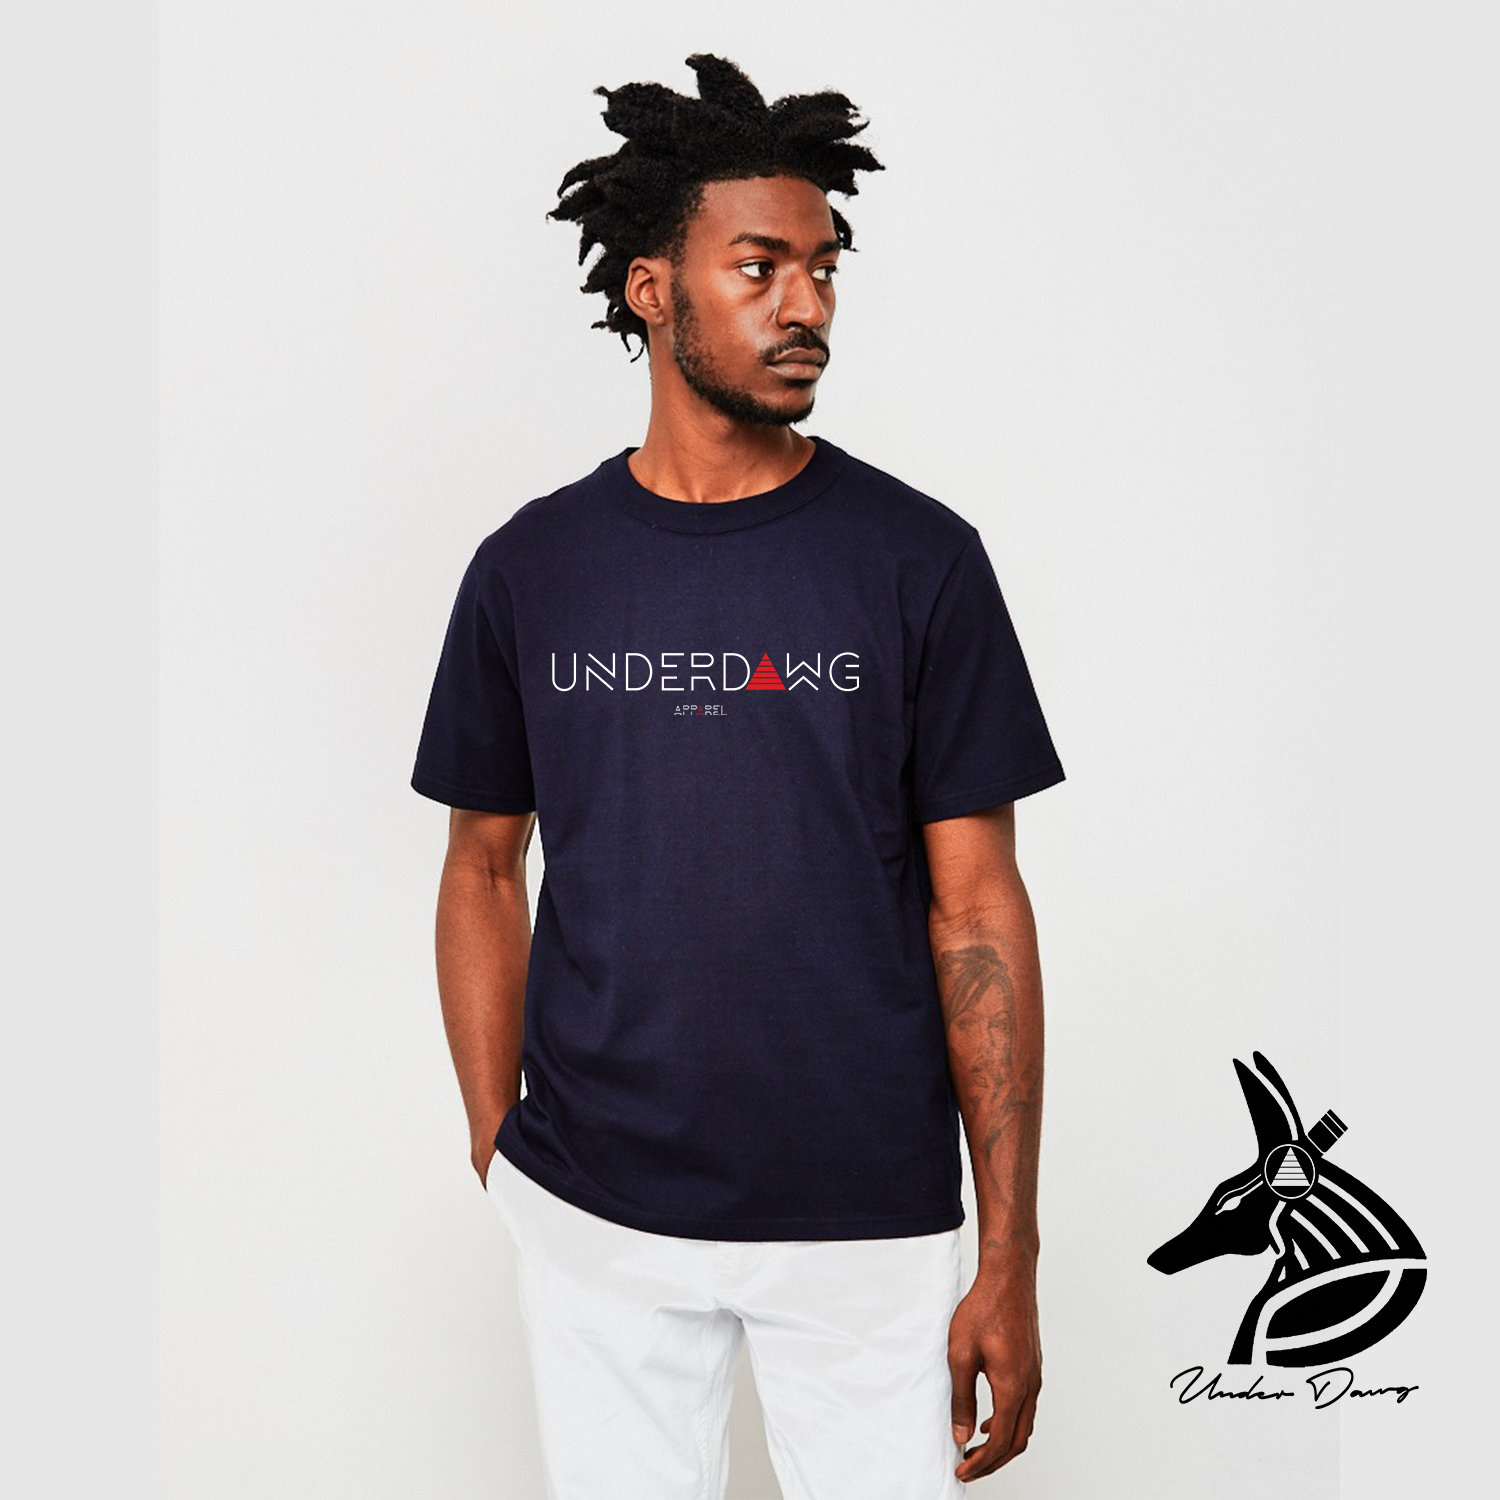 Under Dawg Apparel Short-Sleeve T-Shirt 00032